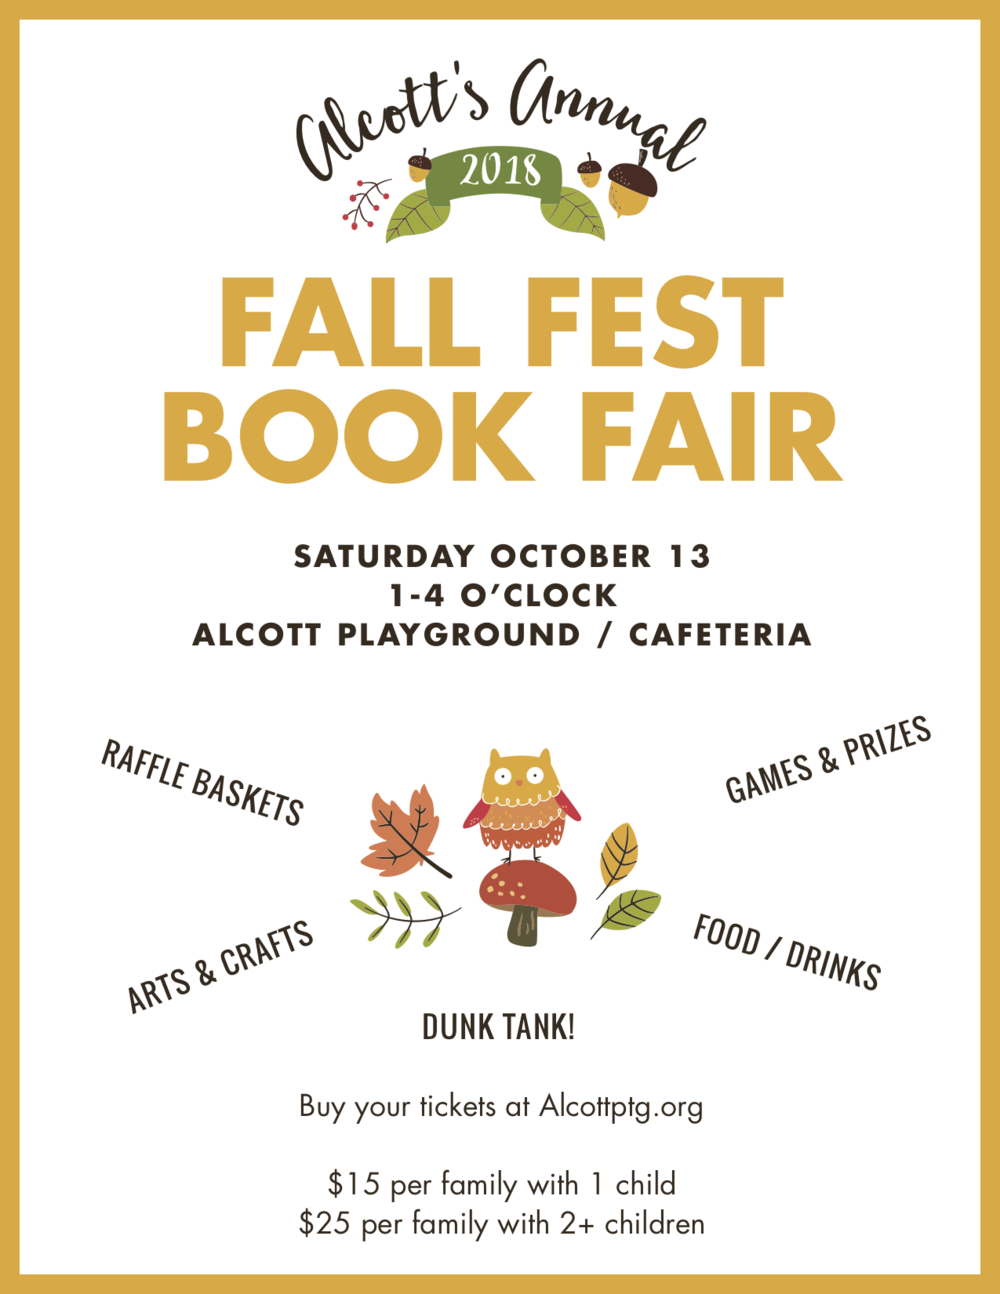 Alcott Fall Fest - Fall Festival tickets available at the event Saturday. Sign up to volunteer today! Saturday, October 13, 1 - 4 pm at Alcott School and PlaygroundThe Alcott Fall Fest is just a few days away on Saturday October 13 from 1 - 4 pm - now is a great time to sign up for a volunteer spot! Help is still needed in many areas including set up before the event, selling raffle tickets during the event, and clean up. For those parents feeling brave, you might sign up for 30 minutes in the dunk tank- costumes optional but encouraged!Tickets can be purchased at the event. All online sales are now closed.See you Saturday!!